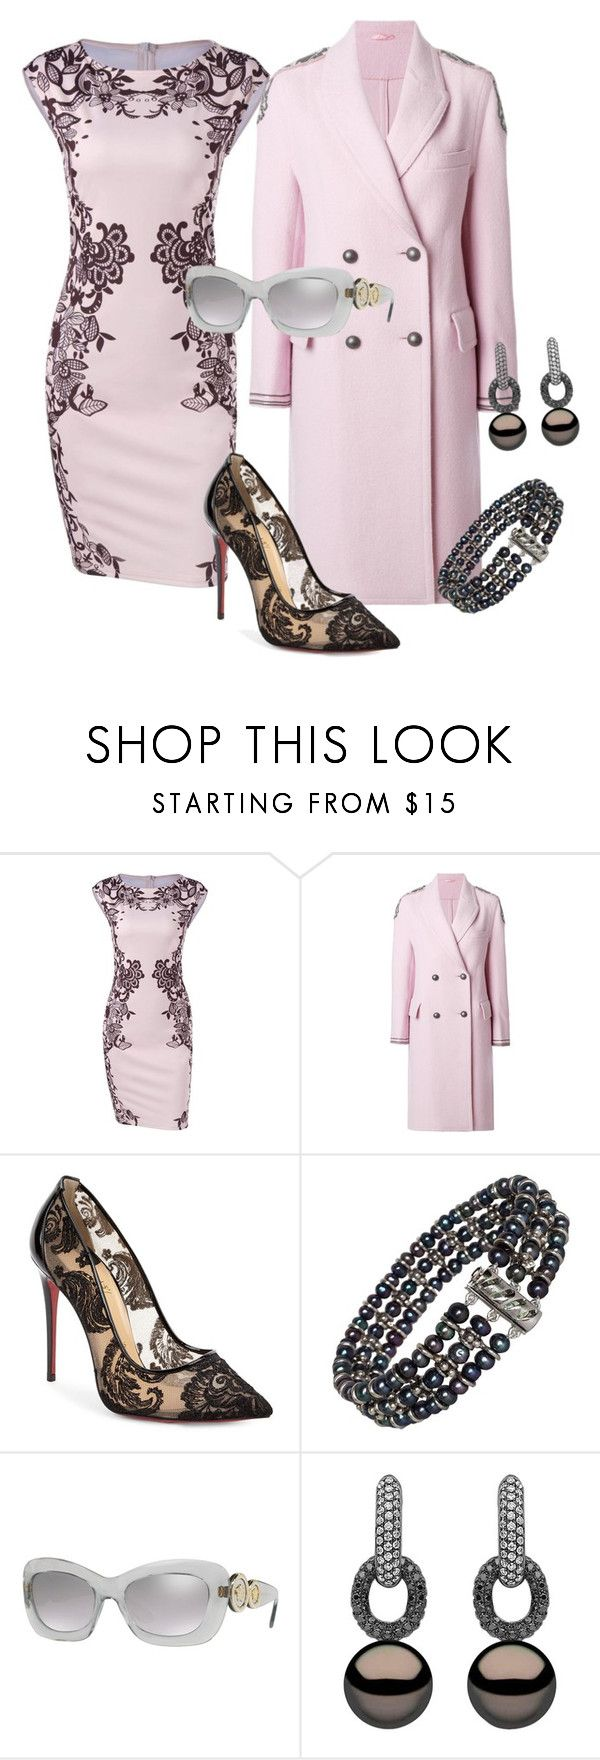 """""""Untitled #676"""" by joyce-kemp ❤ liked on Polyvore featuring Ermanno Scervino, Christian Louboutin, Marina J., Versace and Yoko London"""